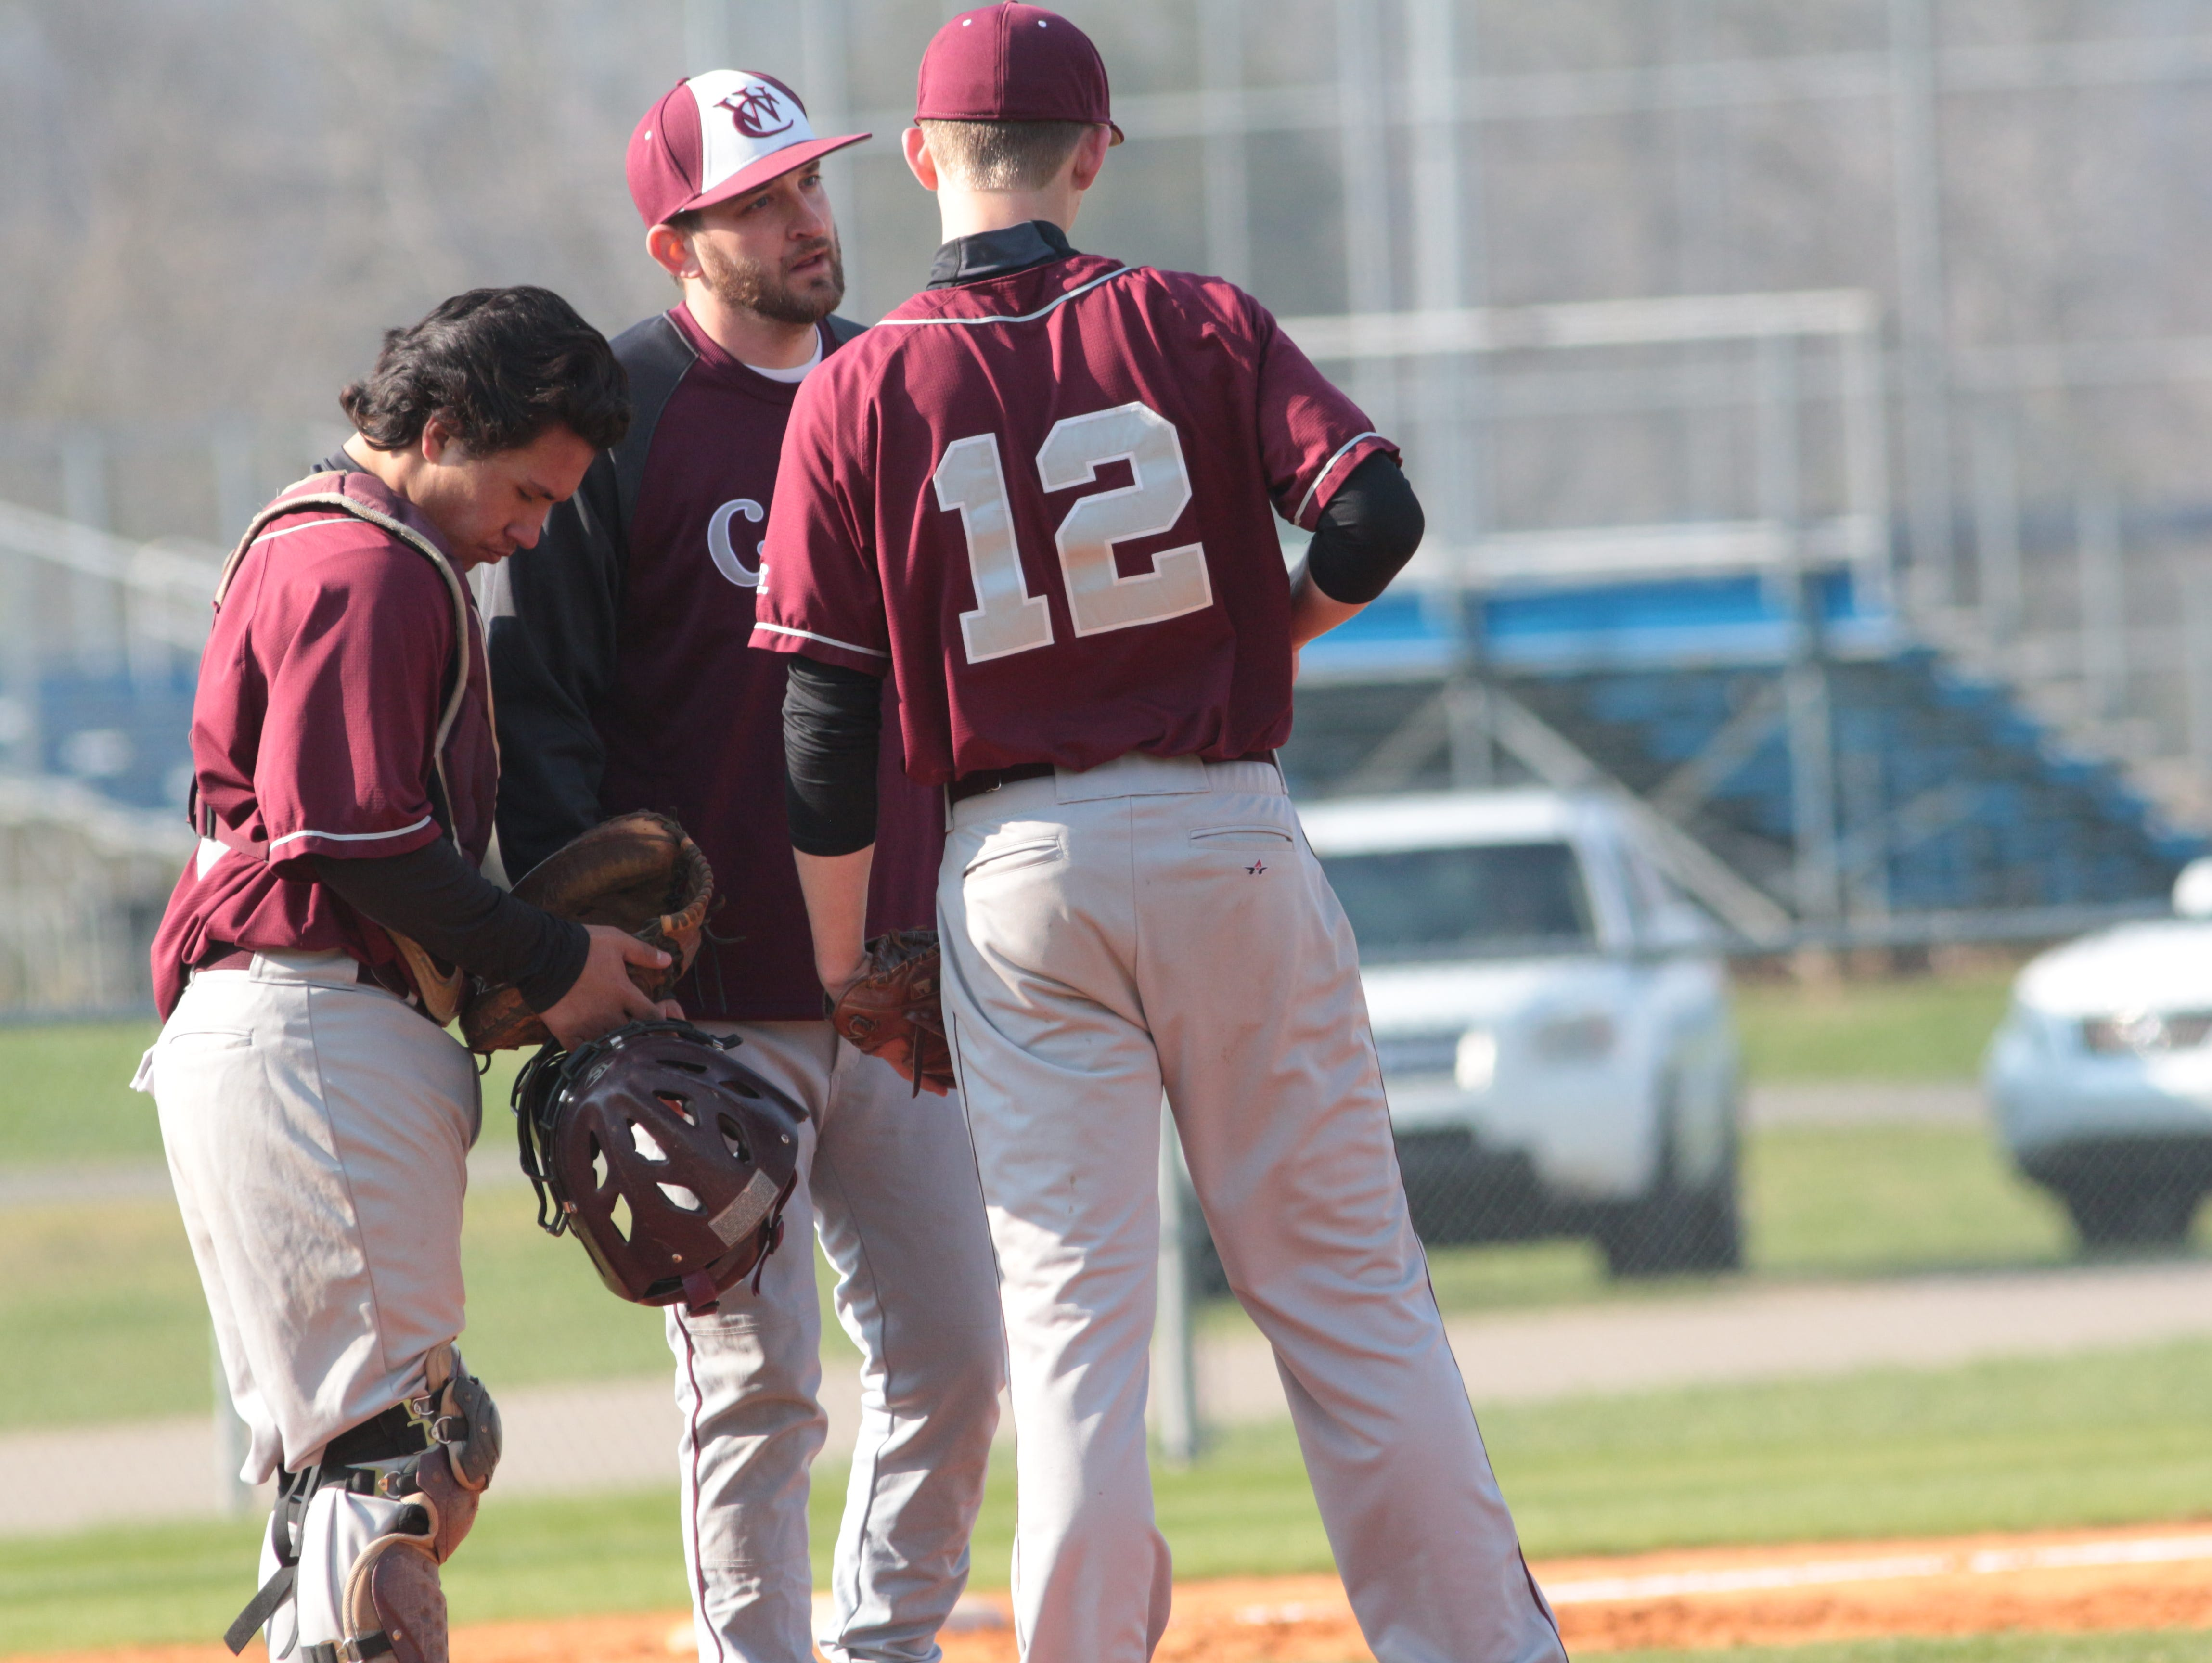 West Creek coach Will Jobe talks to his pitcher and catcher during a game earlier this season. Jobe resigned Wednesday at the Coyotes' baseball coach.